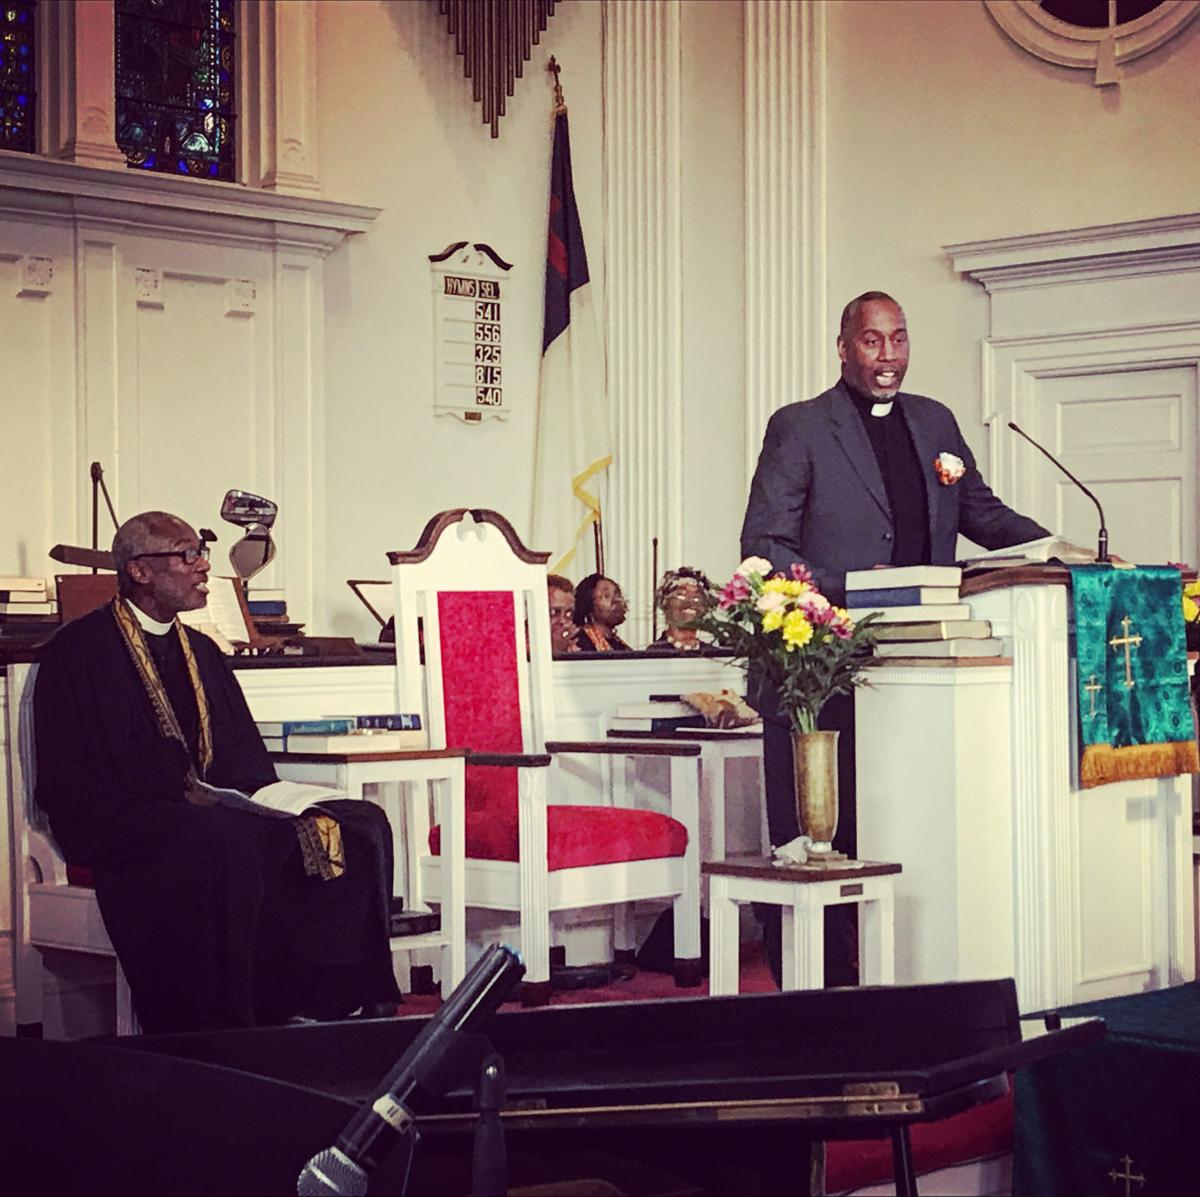 Oxford Presbyterian Church pastor the Rev. Kevin Porter listens to guest speaker the Rev. Jimmie Ray Hawkins. Hawkins works in Washington, D.C. as director of the Presbyterian Church (USA) Office of Public Witness. — SUBMITTED PHOTOS